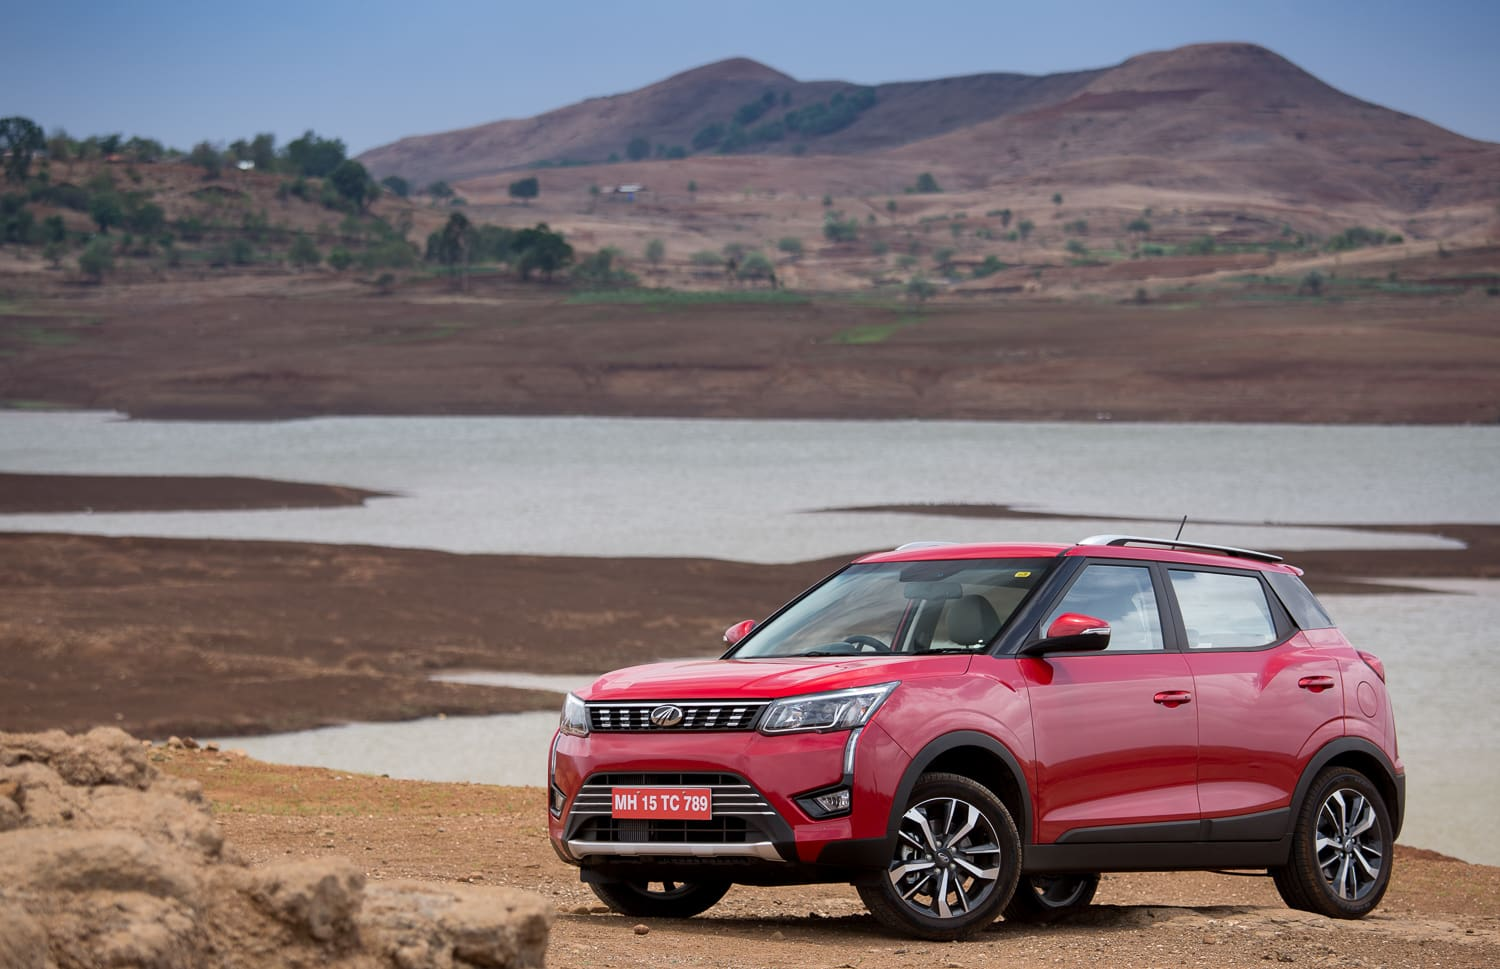 Mahindra XUV300 AMT: First Drive Review